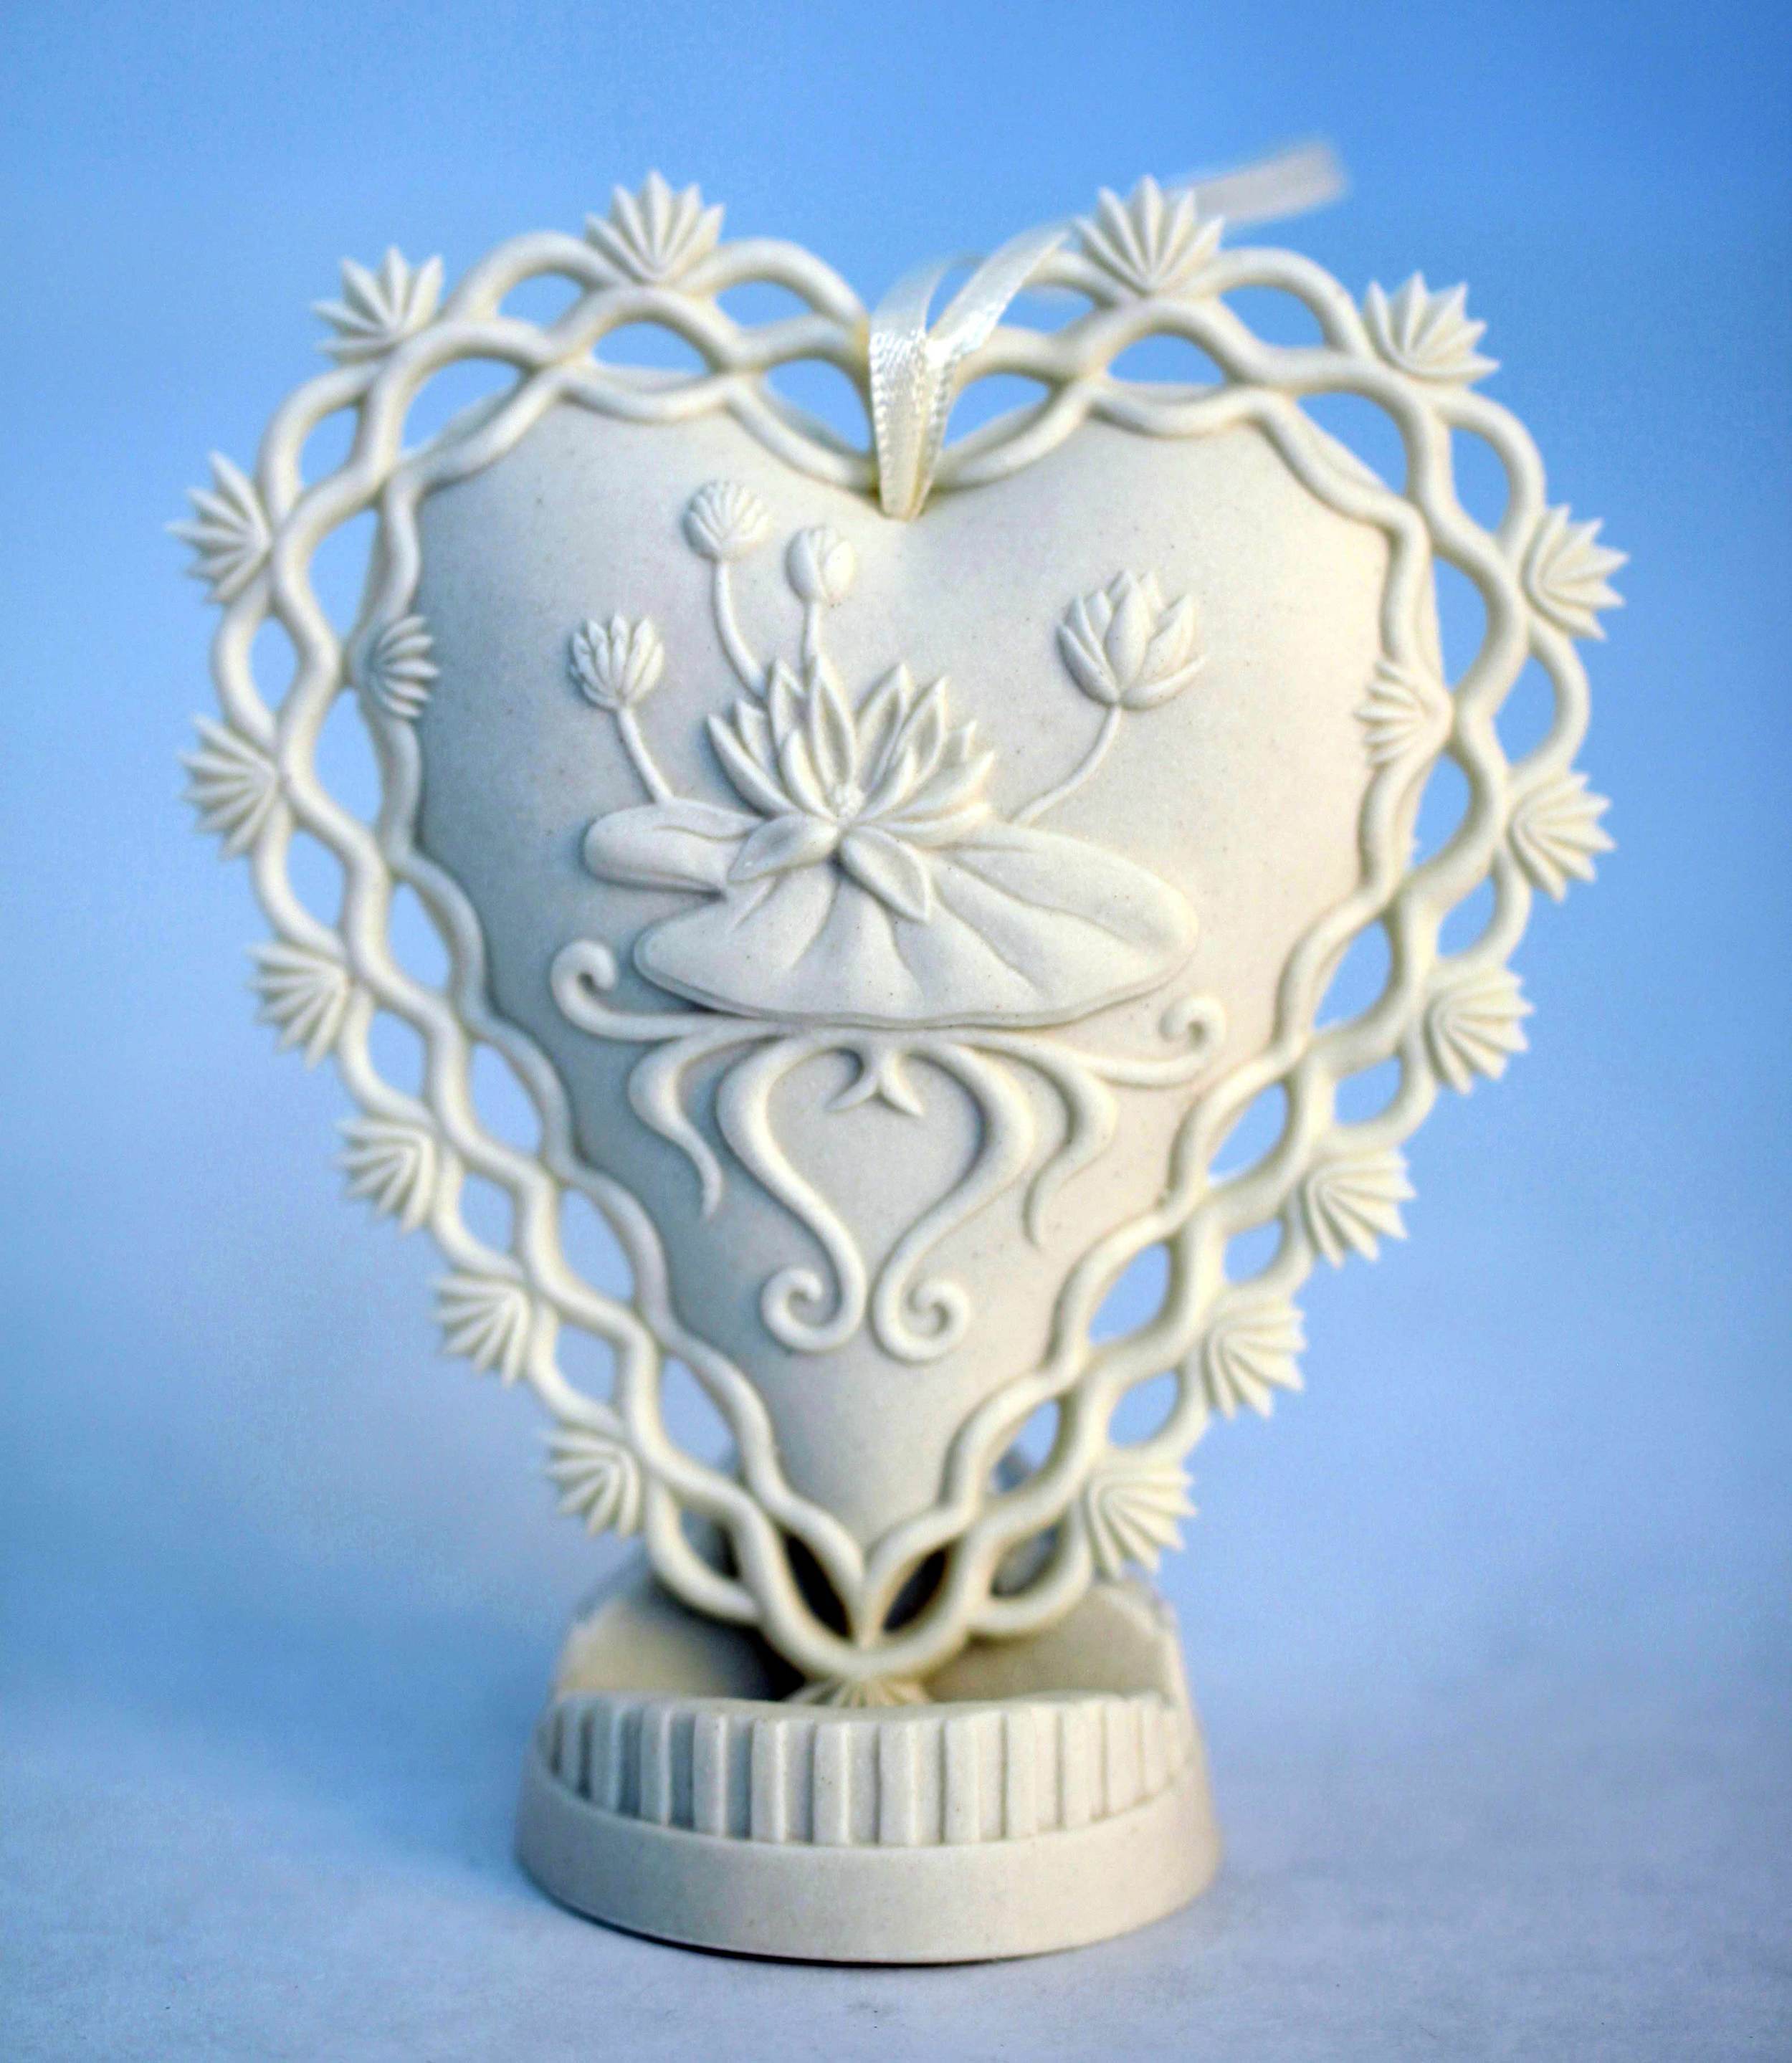 Beside Still Waters Heart Gift Ornament - Porcelain - Displayed on optional porcelain stand.